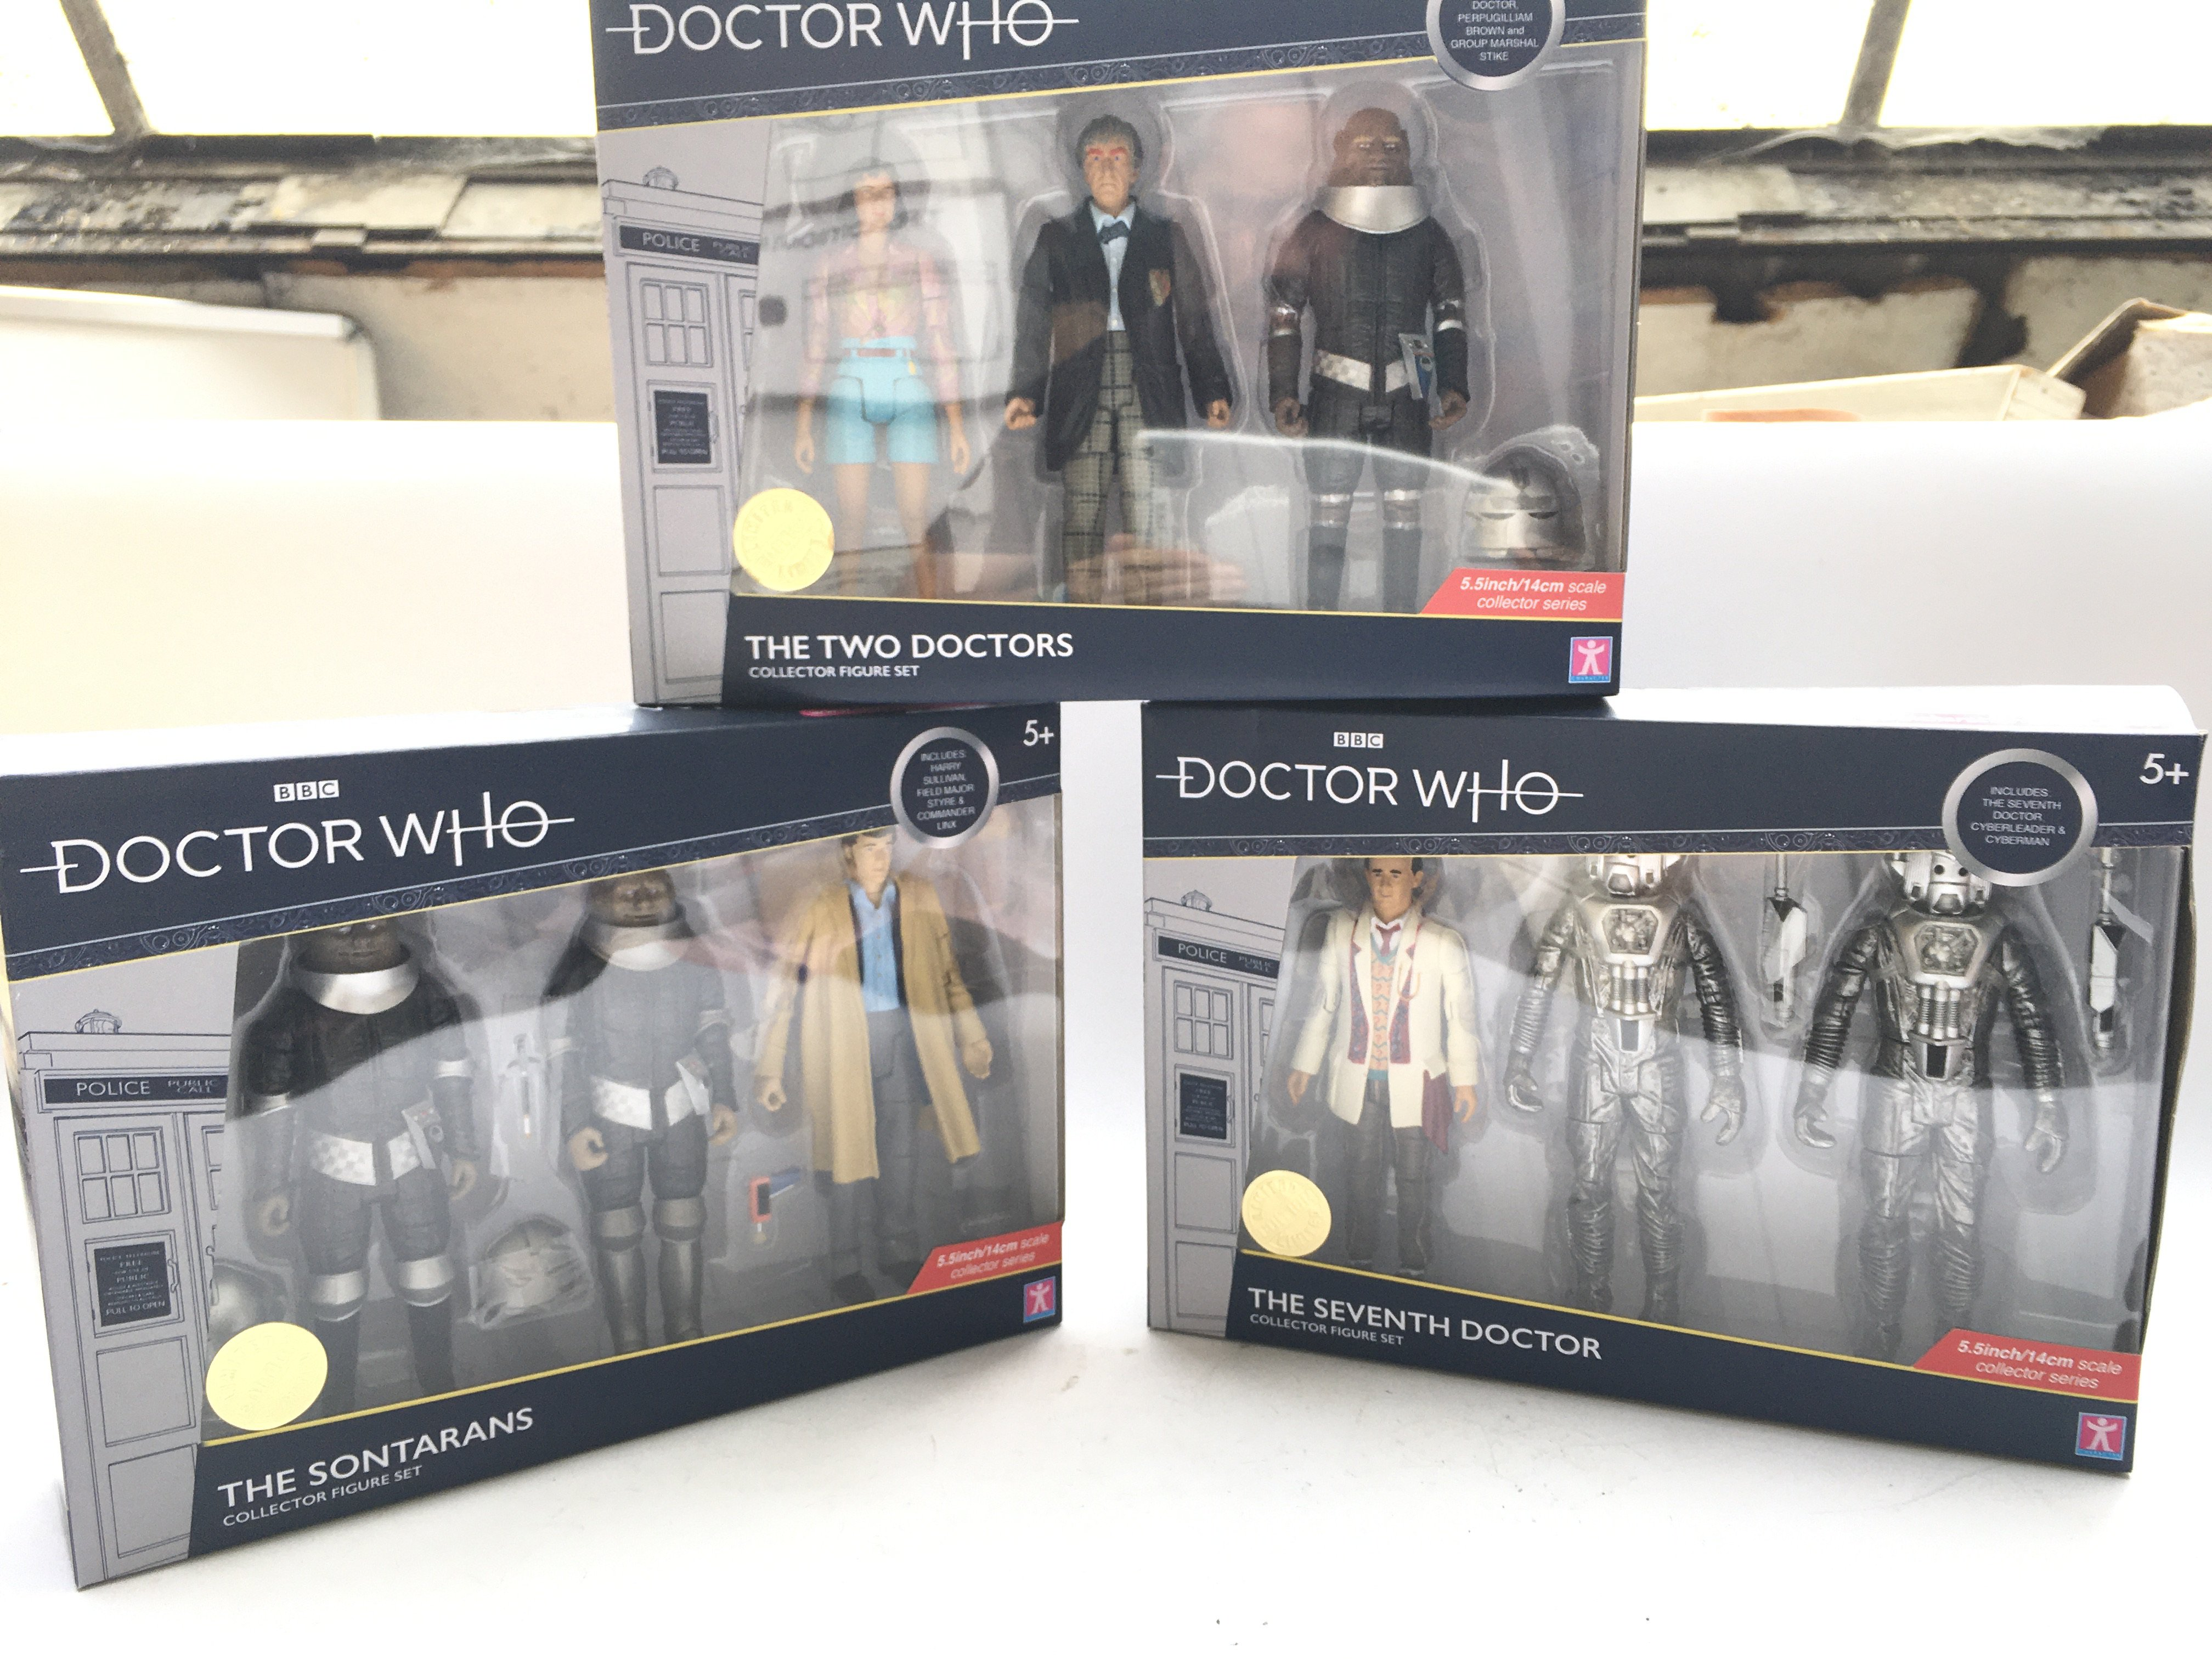 3 X Doctor Who Collector Figure Sets including The